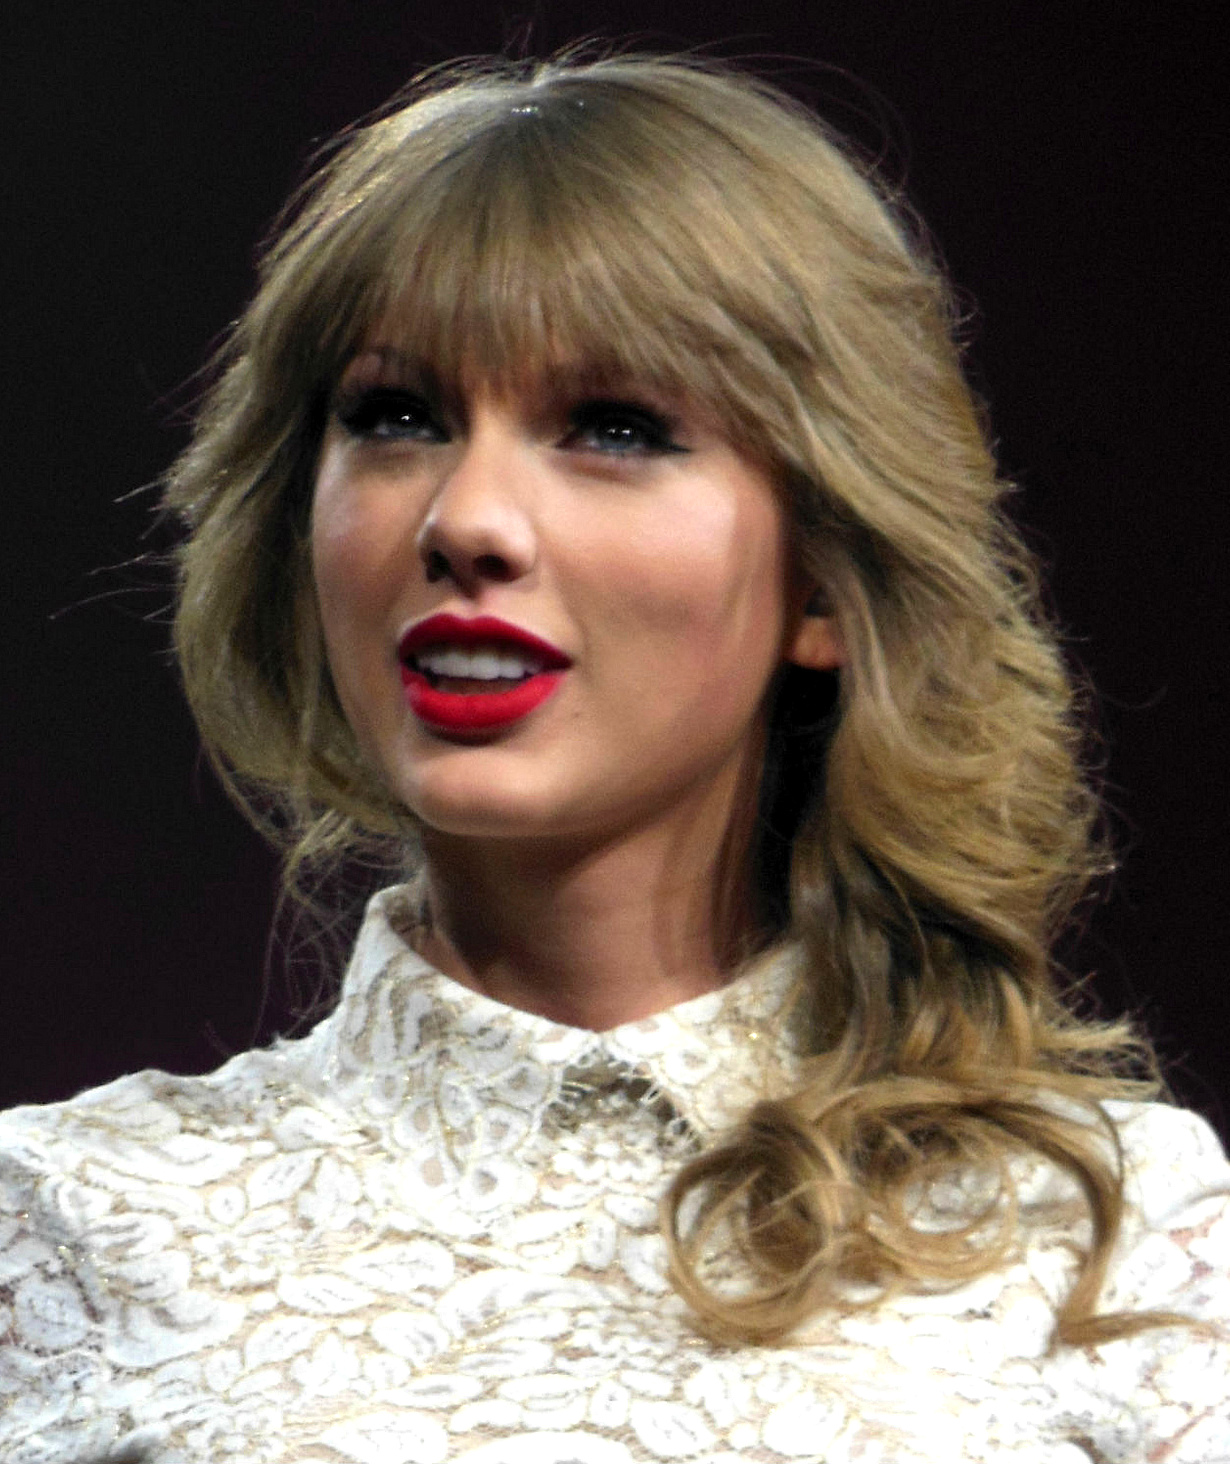 File:Taylor Swift Red Tour 5, 2013.jpg - Wikimedia Commons Taylor Swift